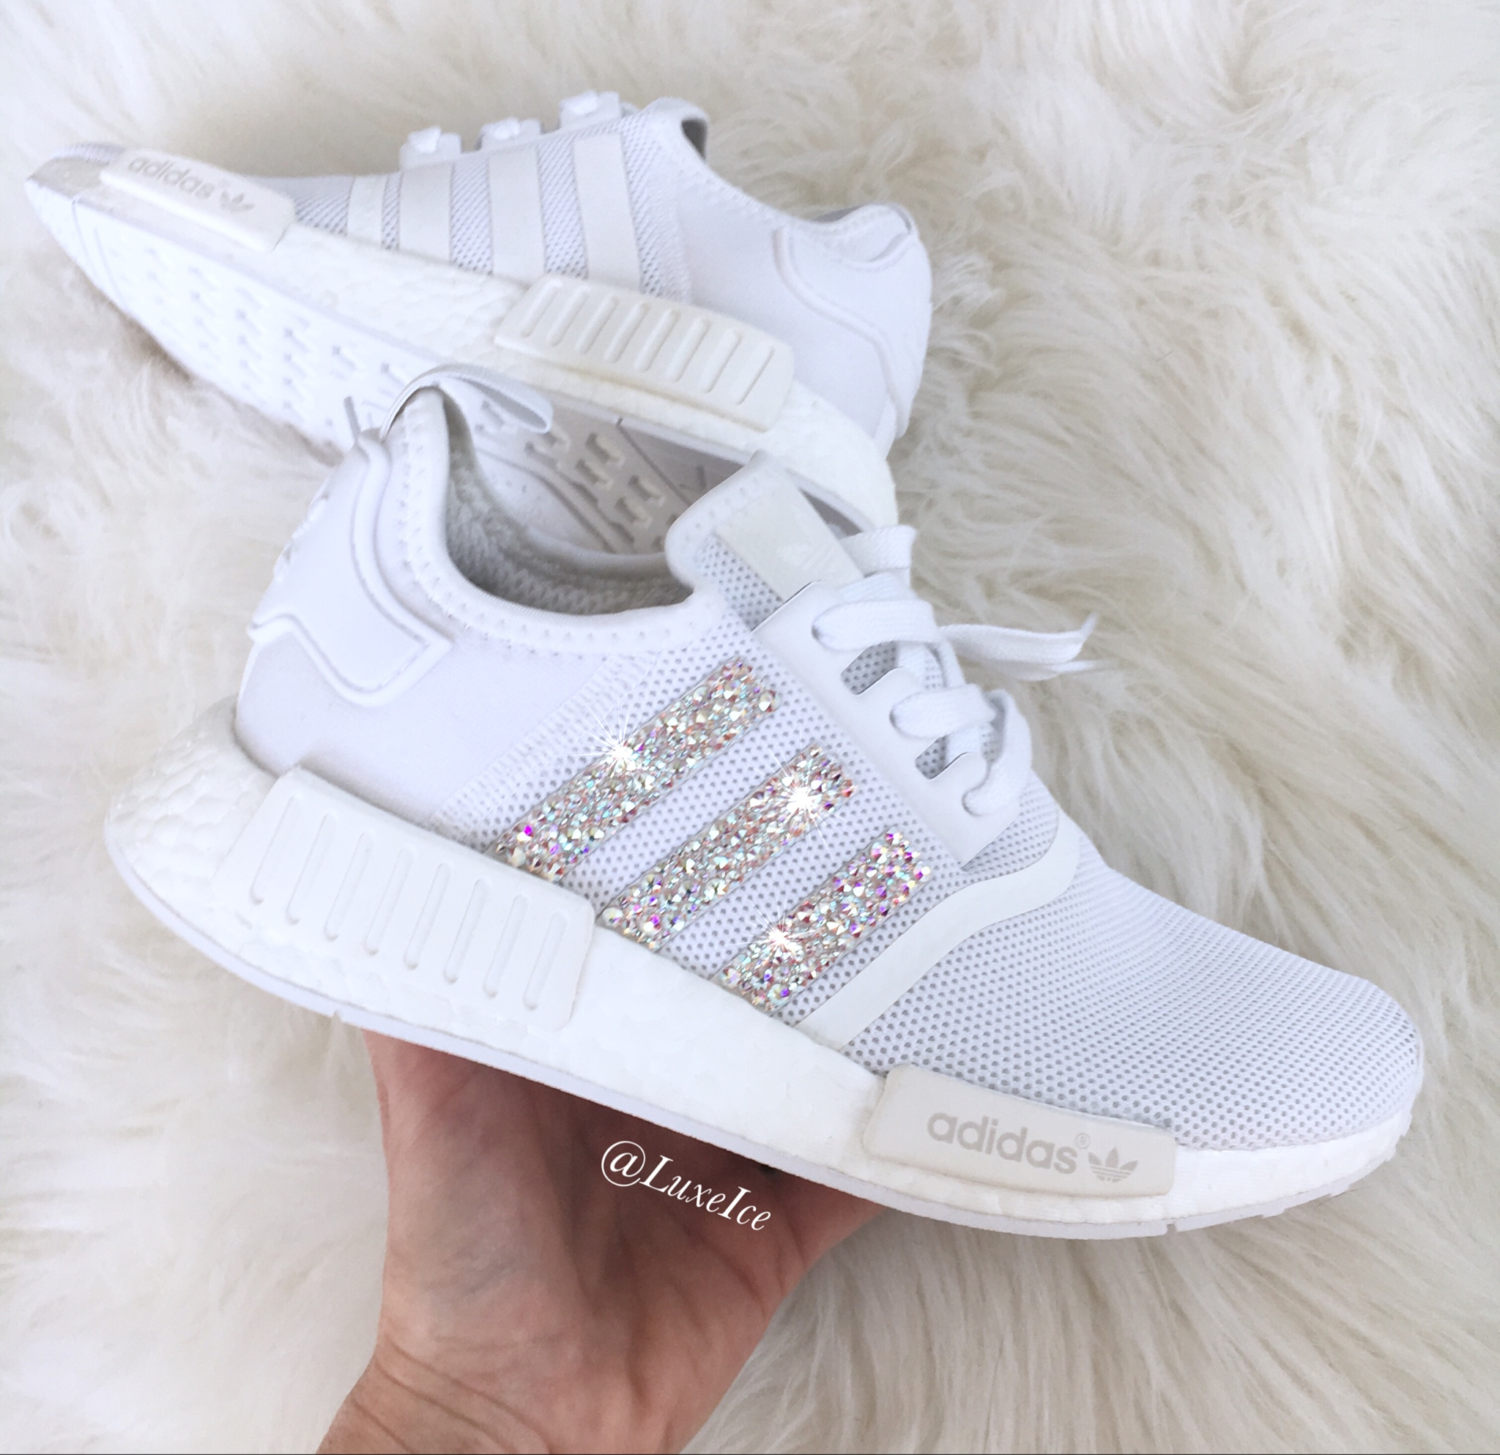 Adidas White Shoes Womens With Lace